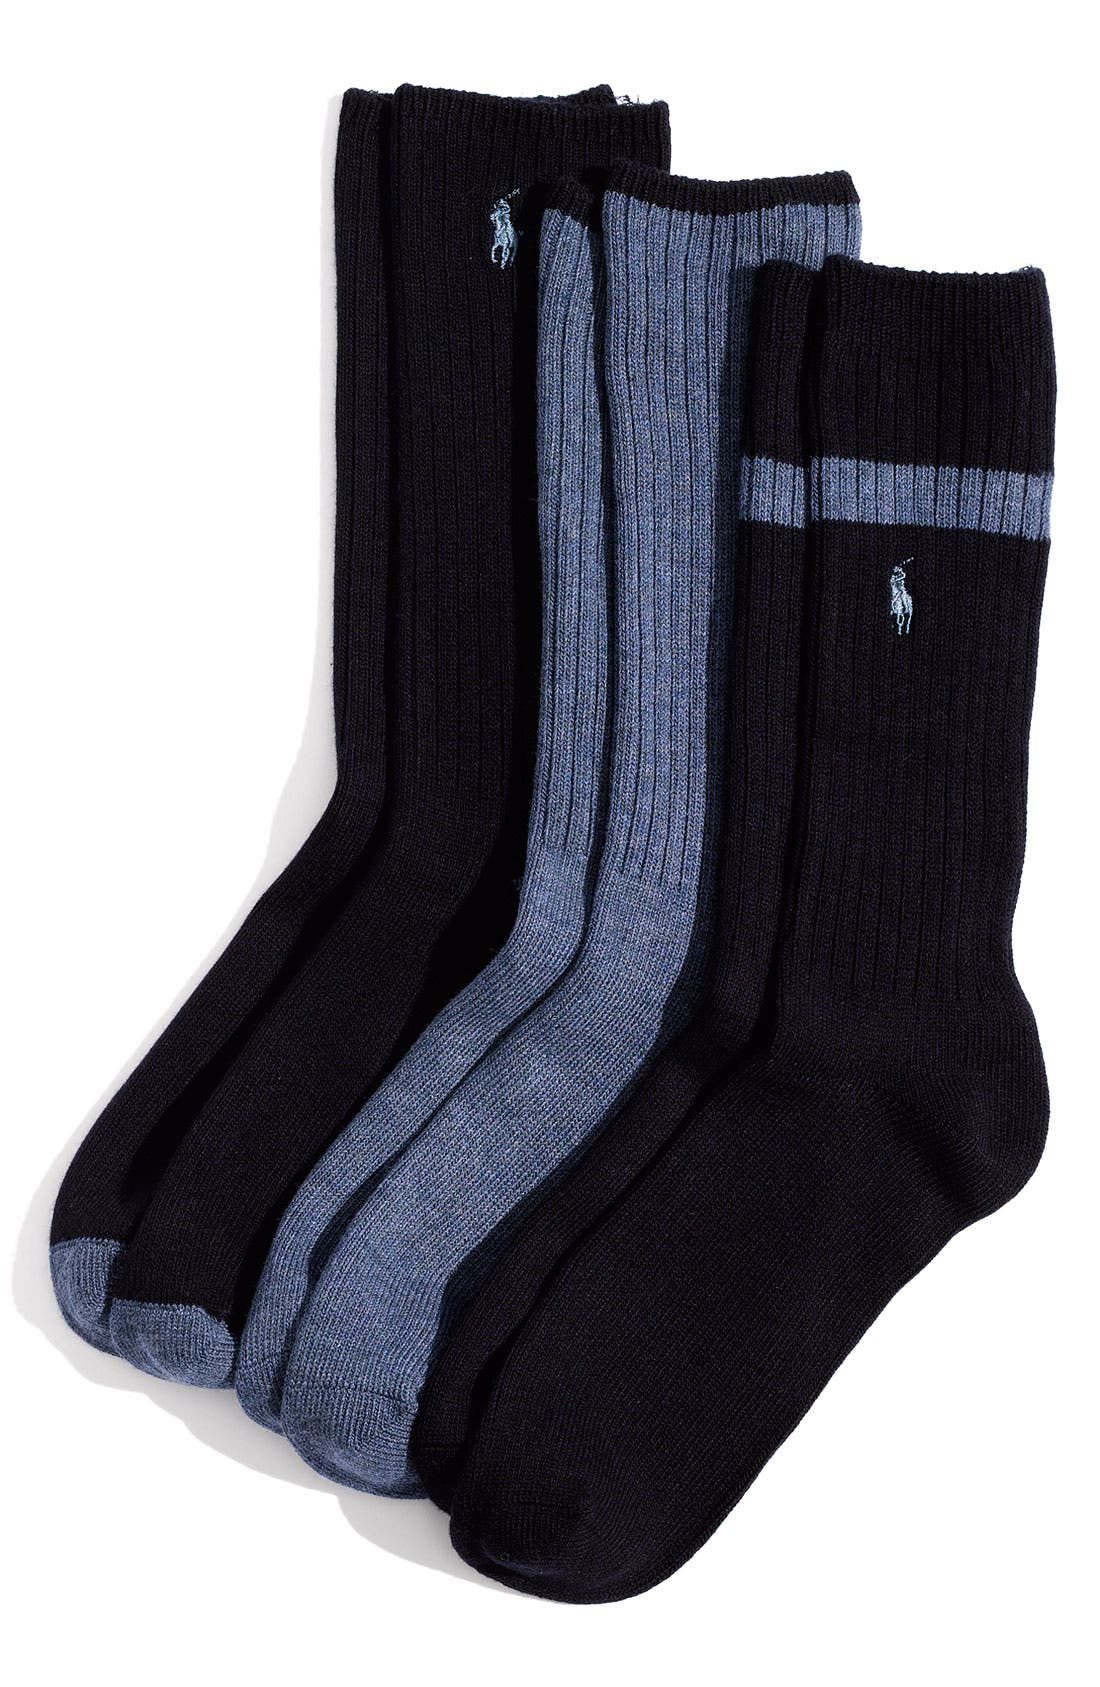 Alternate Image 1 Selected - Polo Ralph Lauren Ribbed Socks (3-Pack)